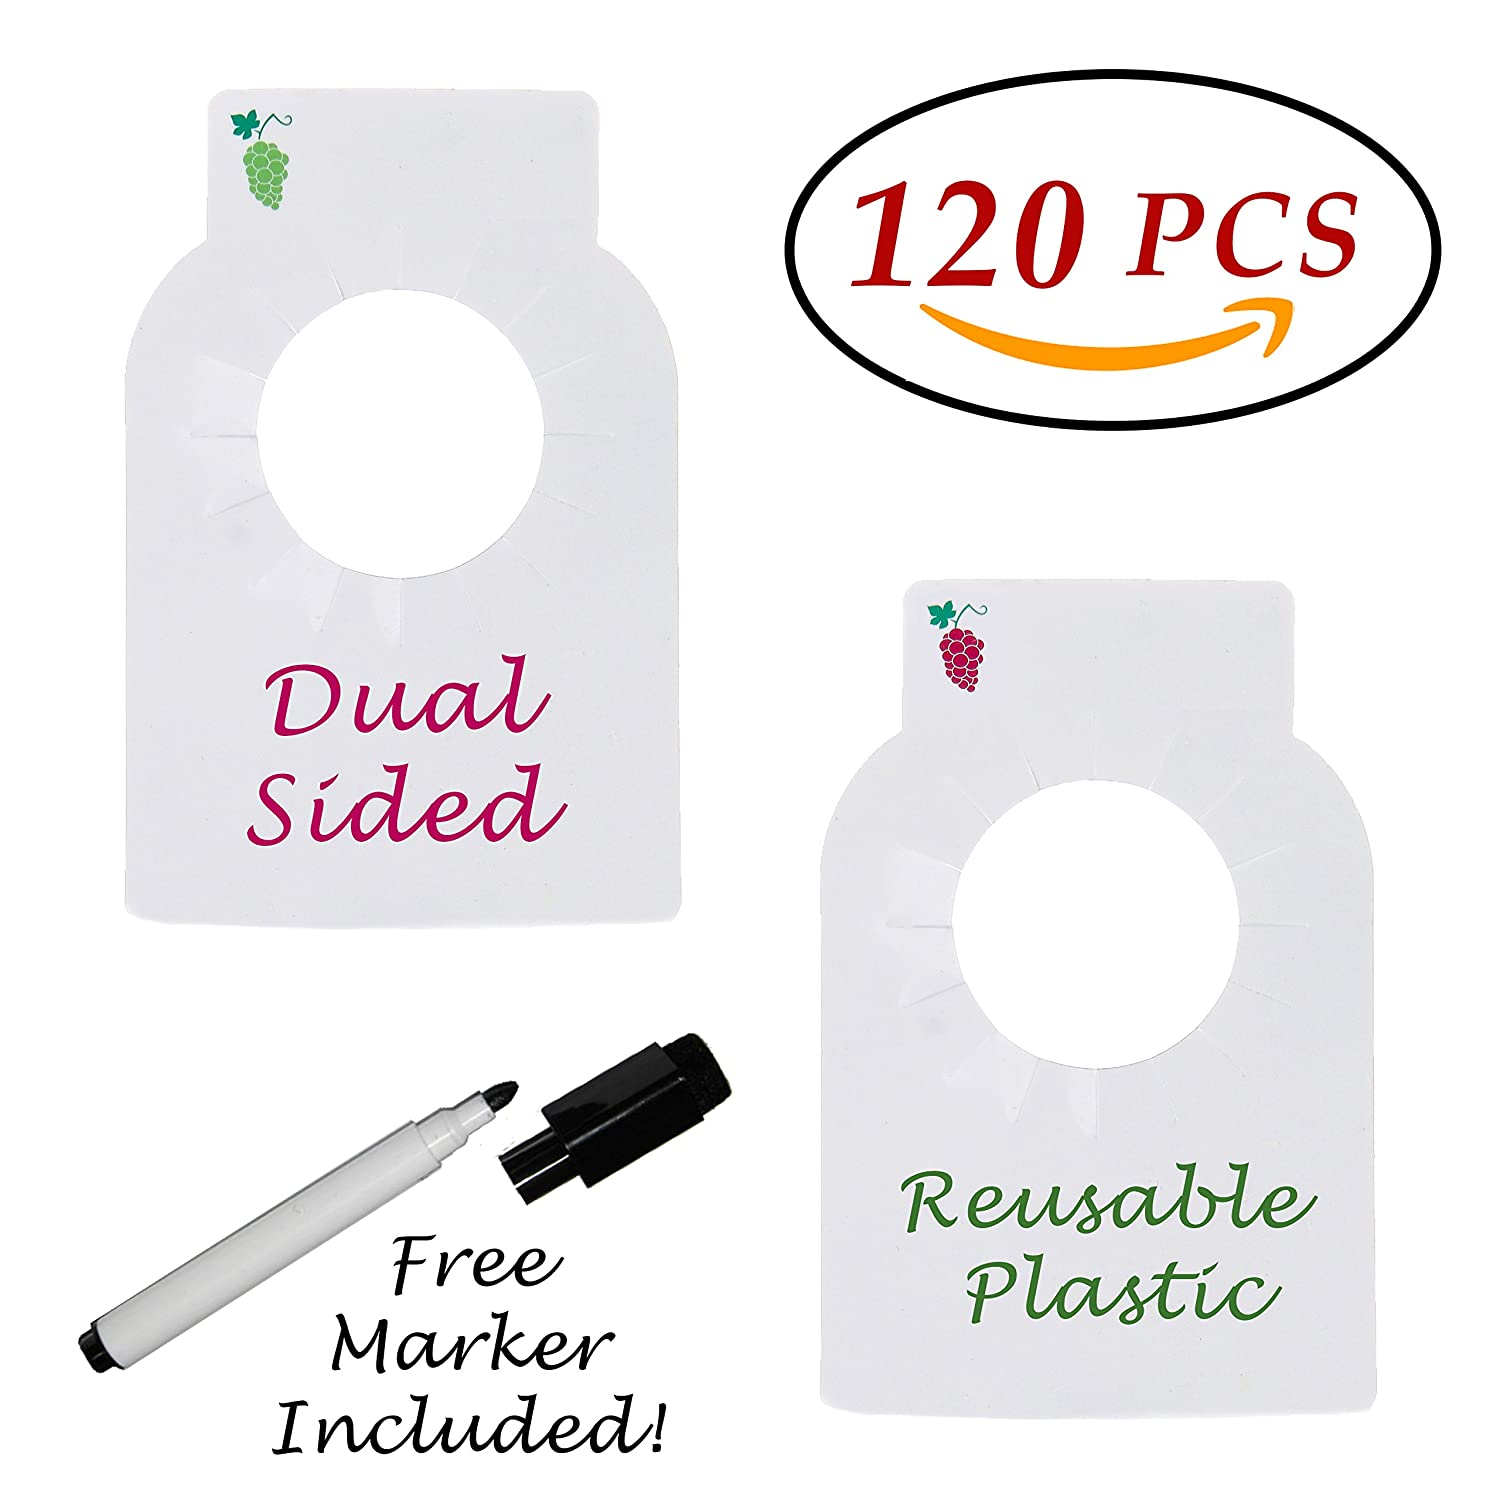 Reusable Wine Bottles Tag Racks Bottle Labels Hang Tags Cellar Storage Glass Markers Plastic Custom Label Fit Enthusiast Erasable Wipes Dry Erase Marker Colored Rack Bulk Blank Liquor Hangers 120 PCS Dapper Display